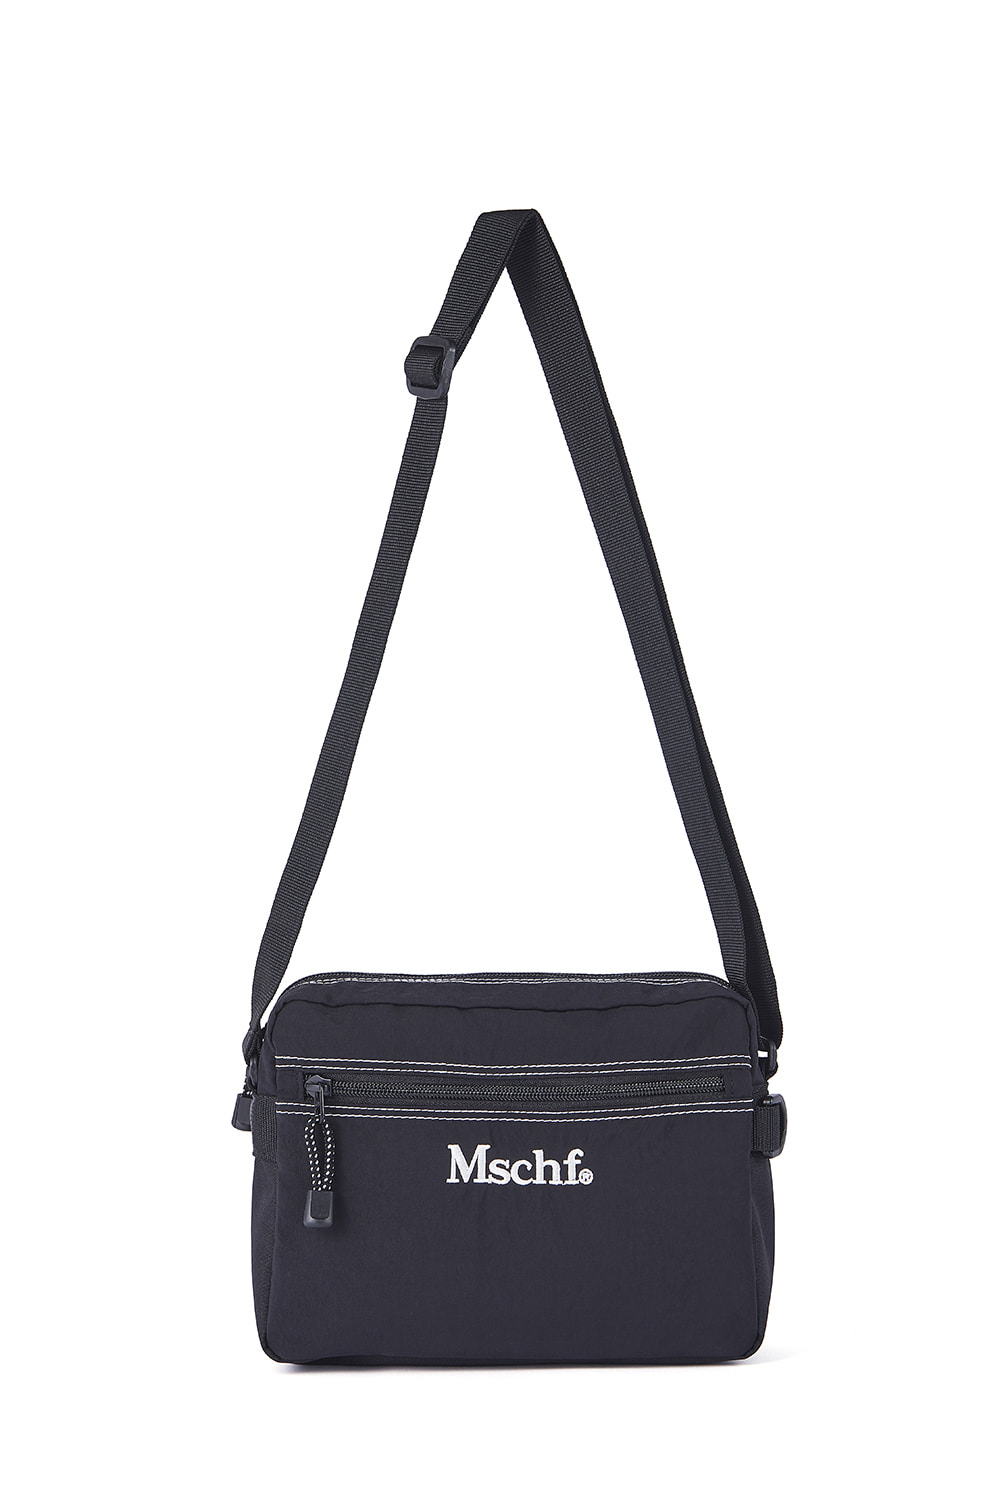 STITCH MINI CROSS BAG_black